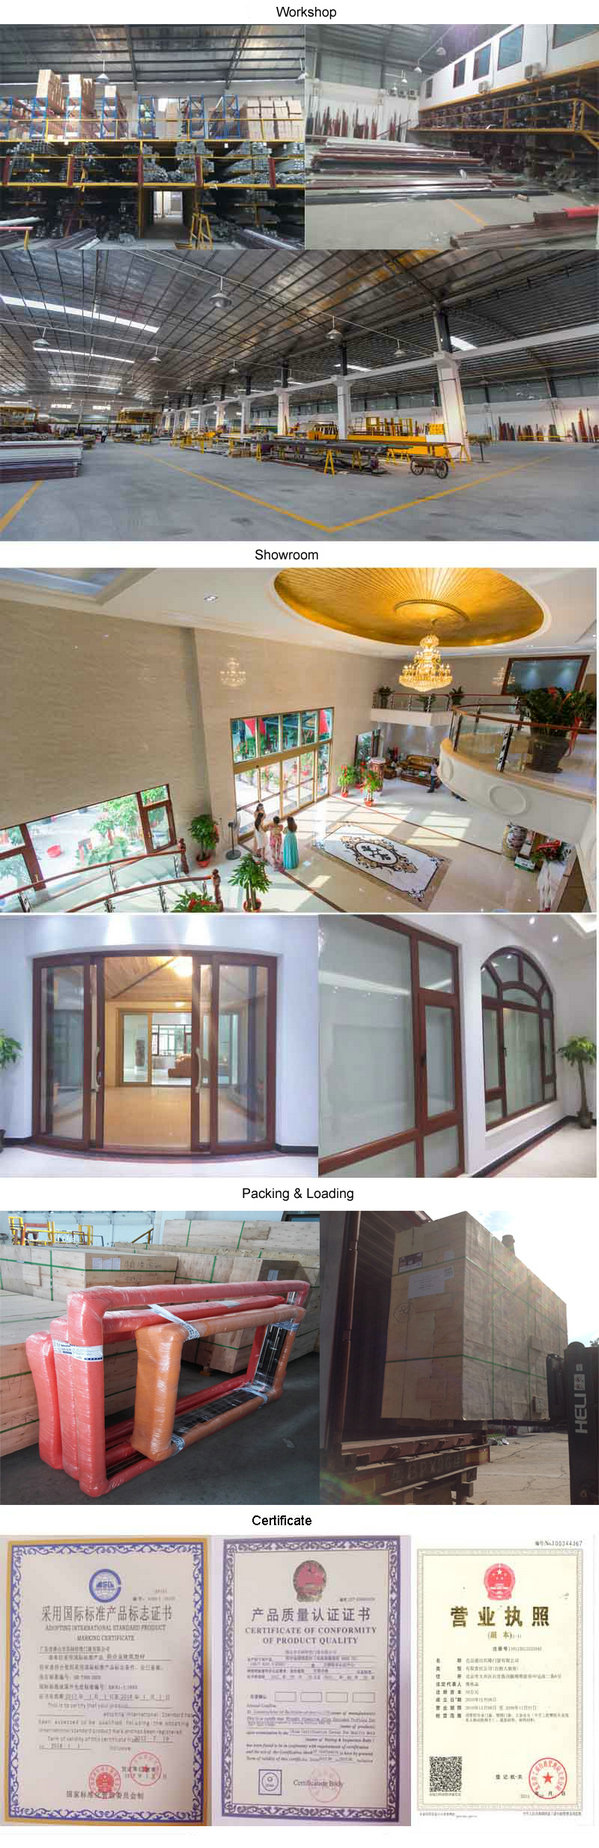 Waterproof & Soundproof Aluminum Casement Window for Villa & House, with Decorative